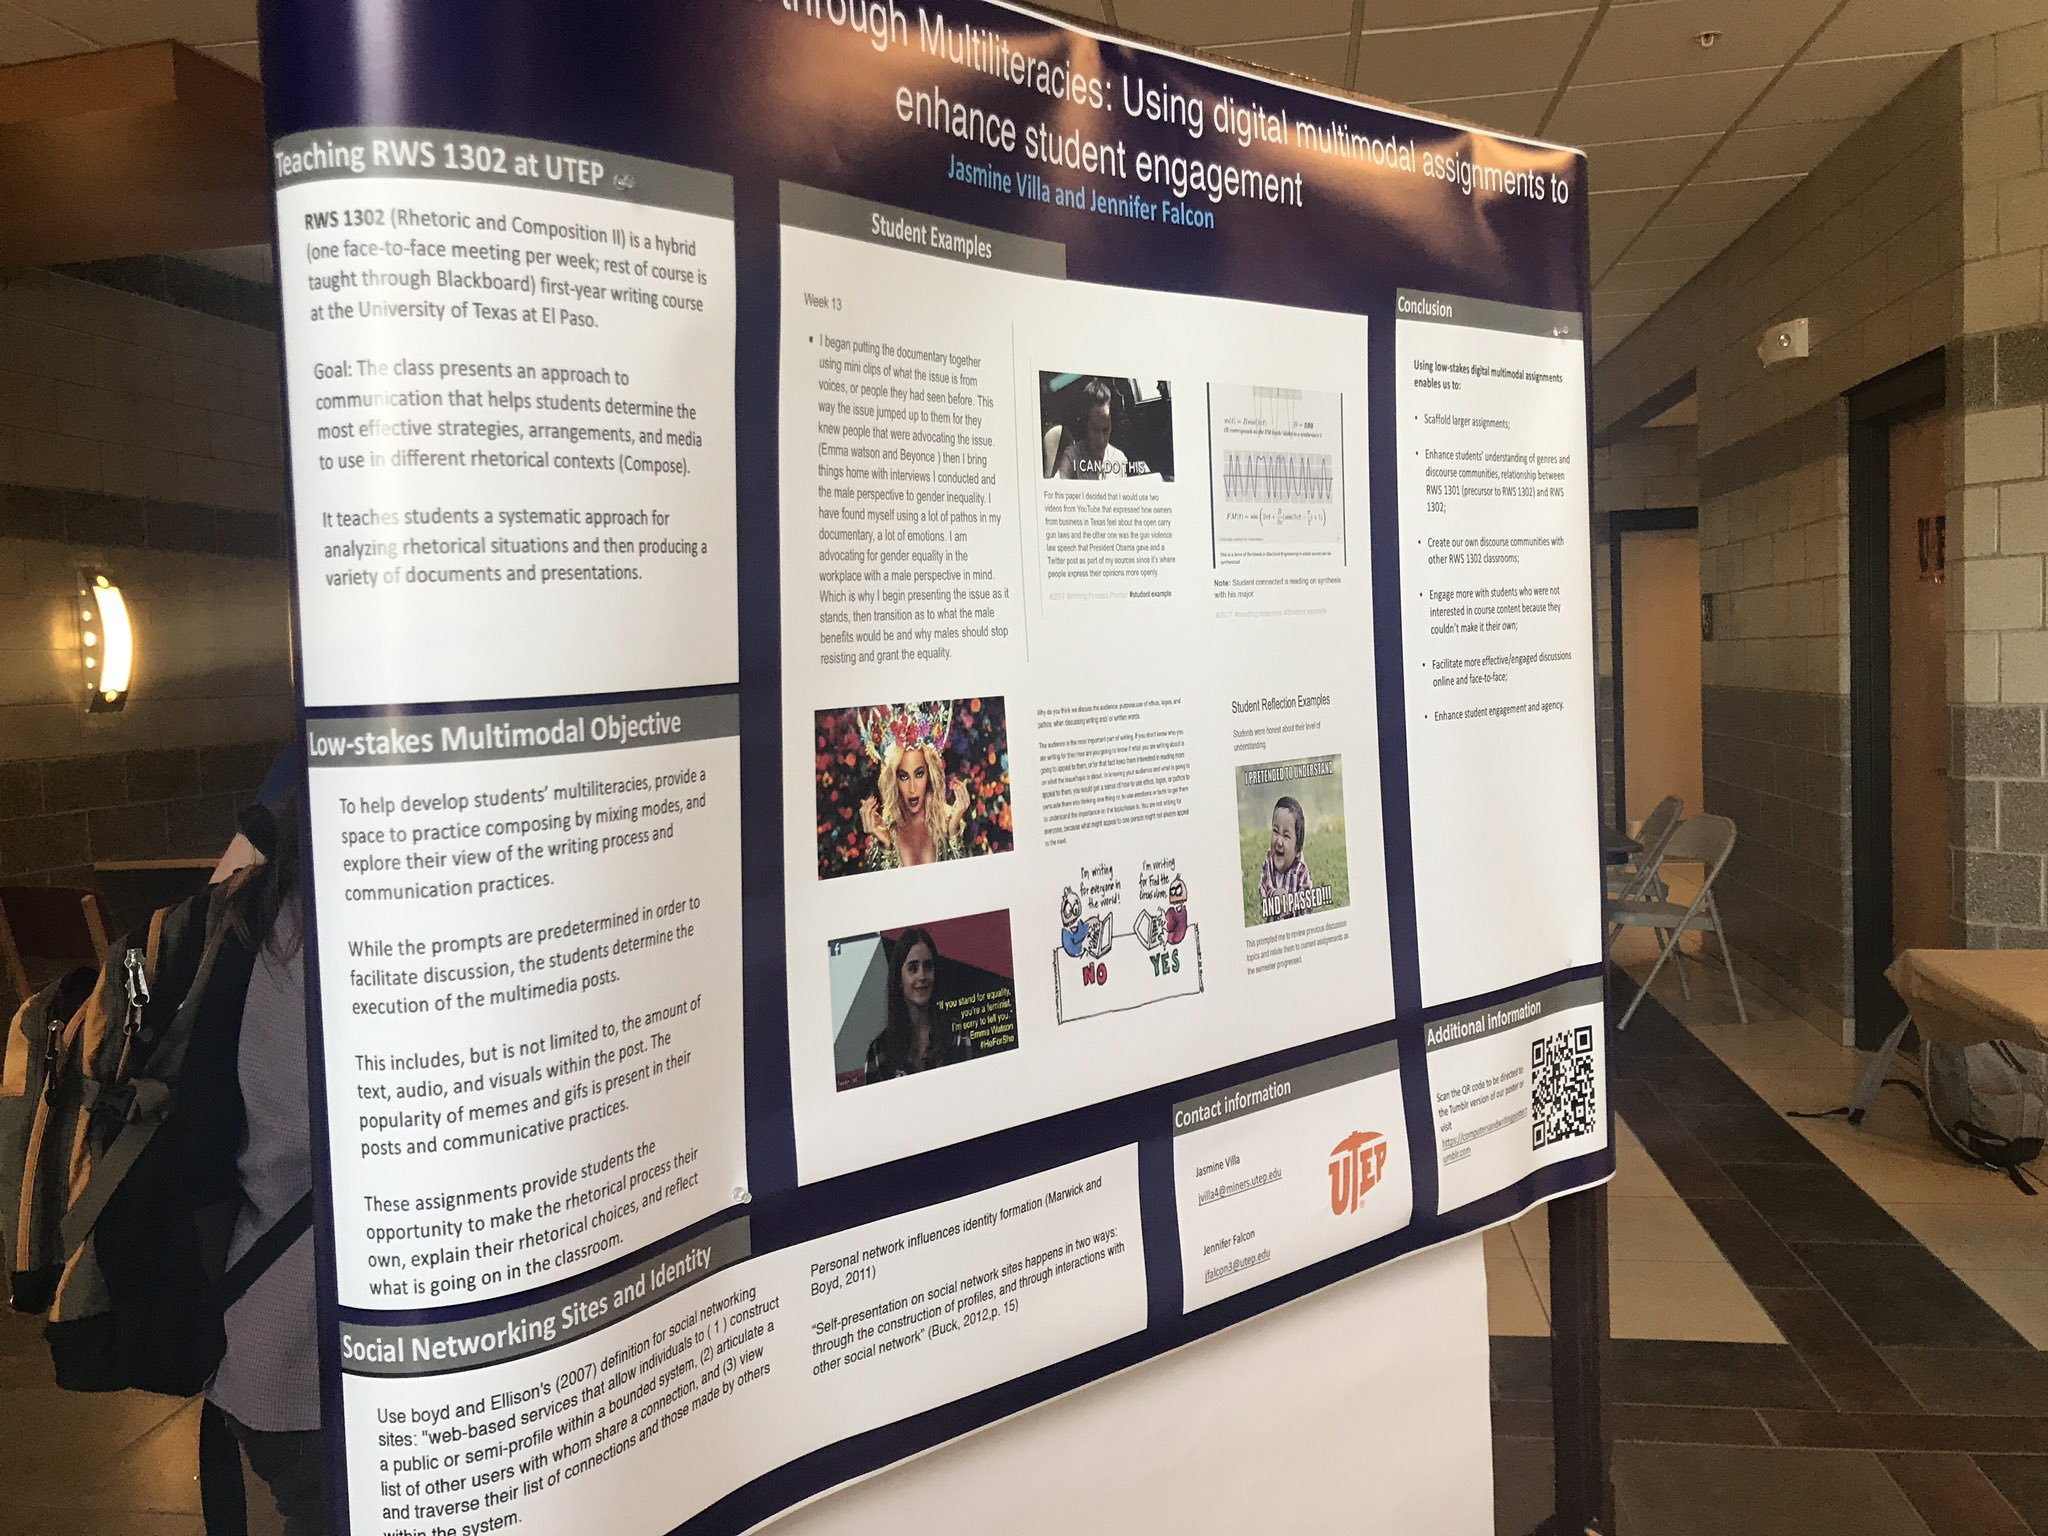 #Cwcon poster presentation with @lastnameFalcon on using digital multimodal assignments to enhance student engagement. #Tumblr @UTEP_RWS https://t.co/jr39v0nm60